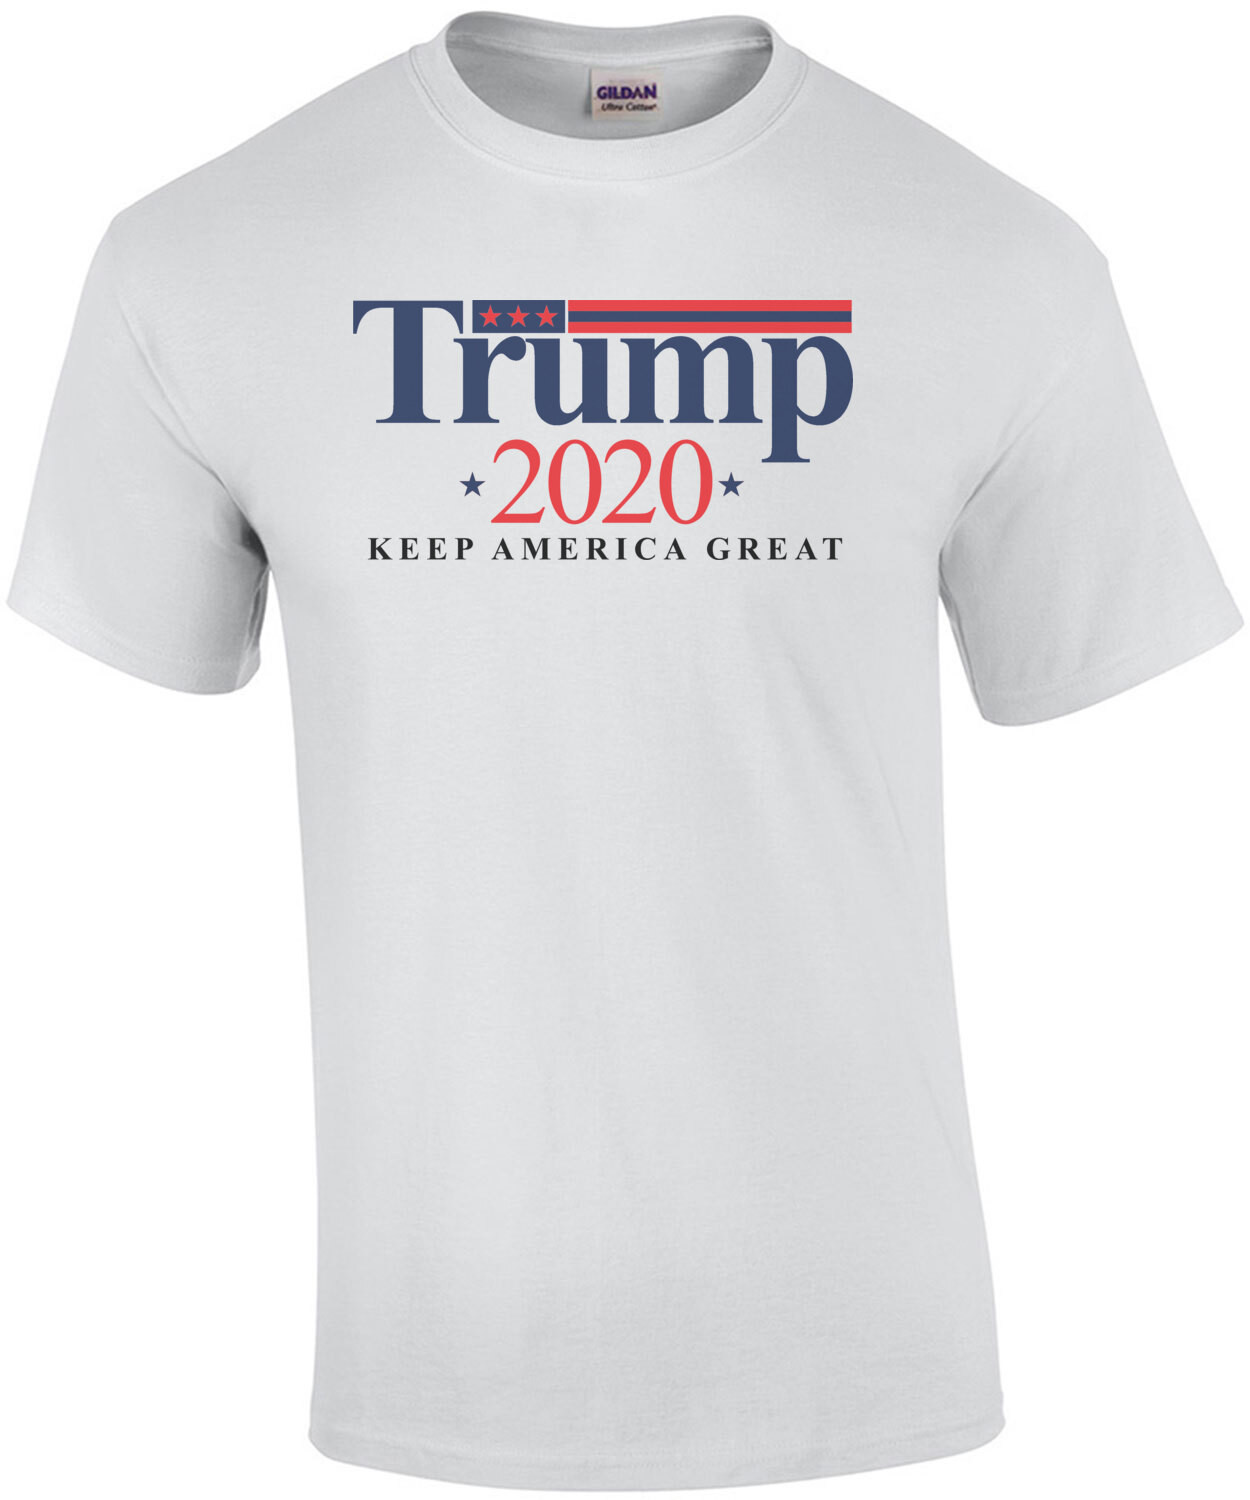 Trump 2020 - Keep America Great - Pro Trump 2020 Election - Conservative Republican T-Shirt